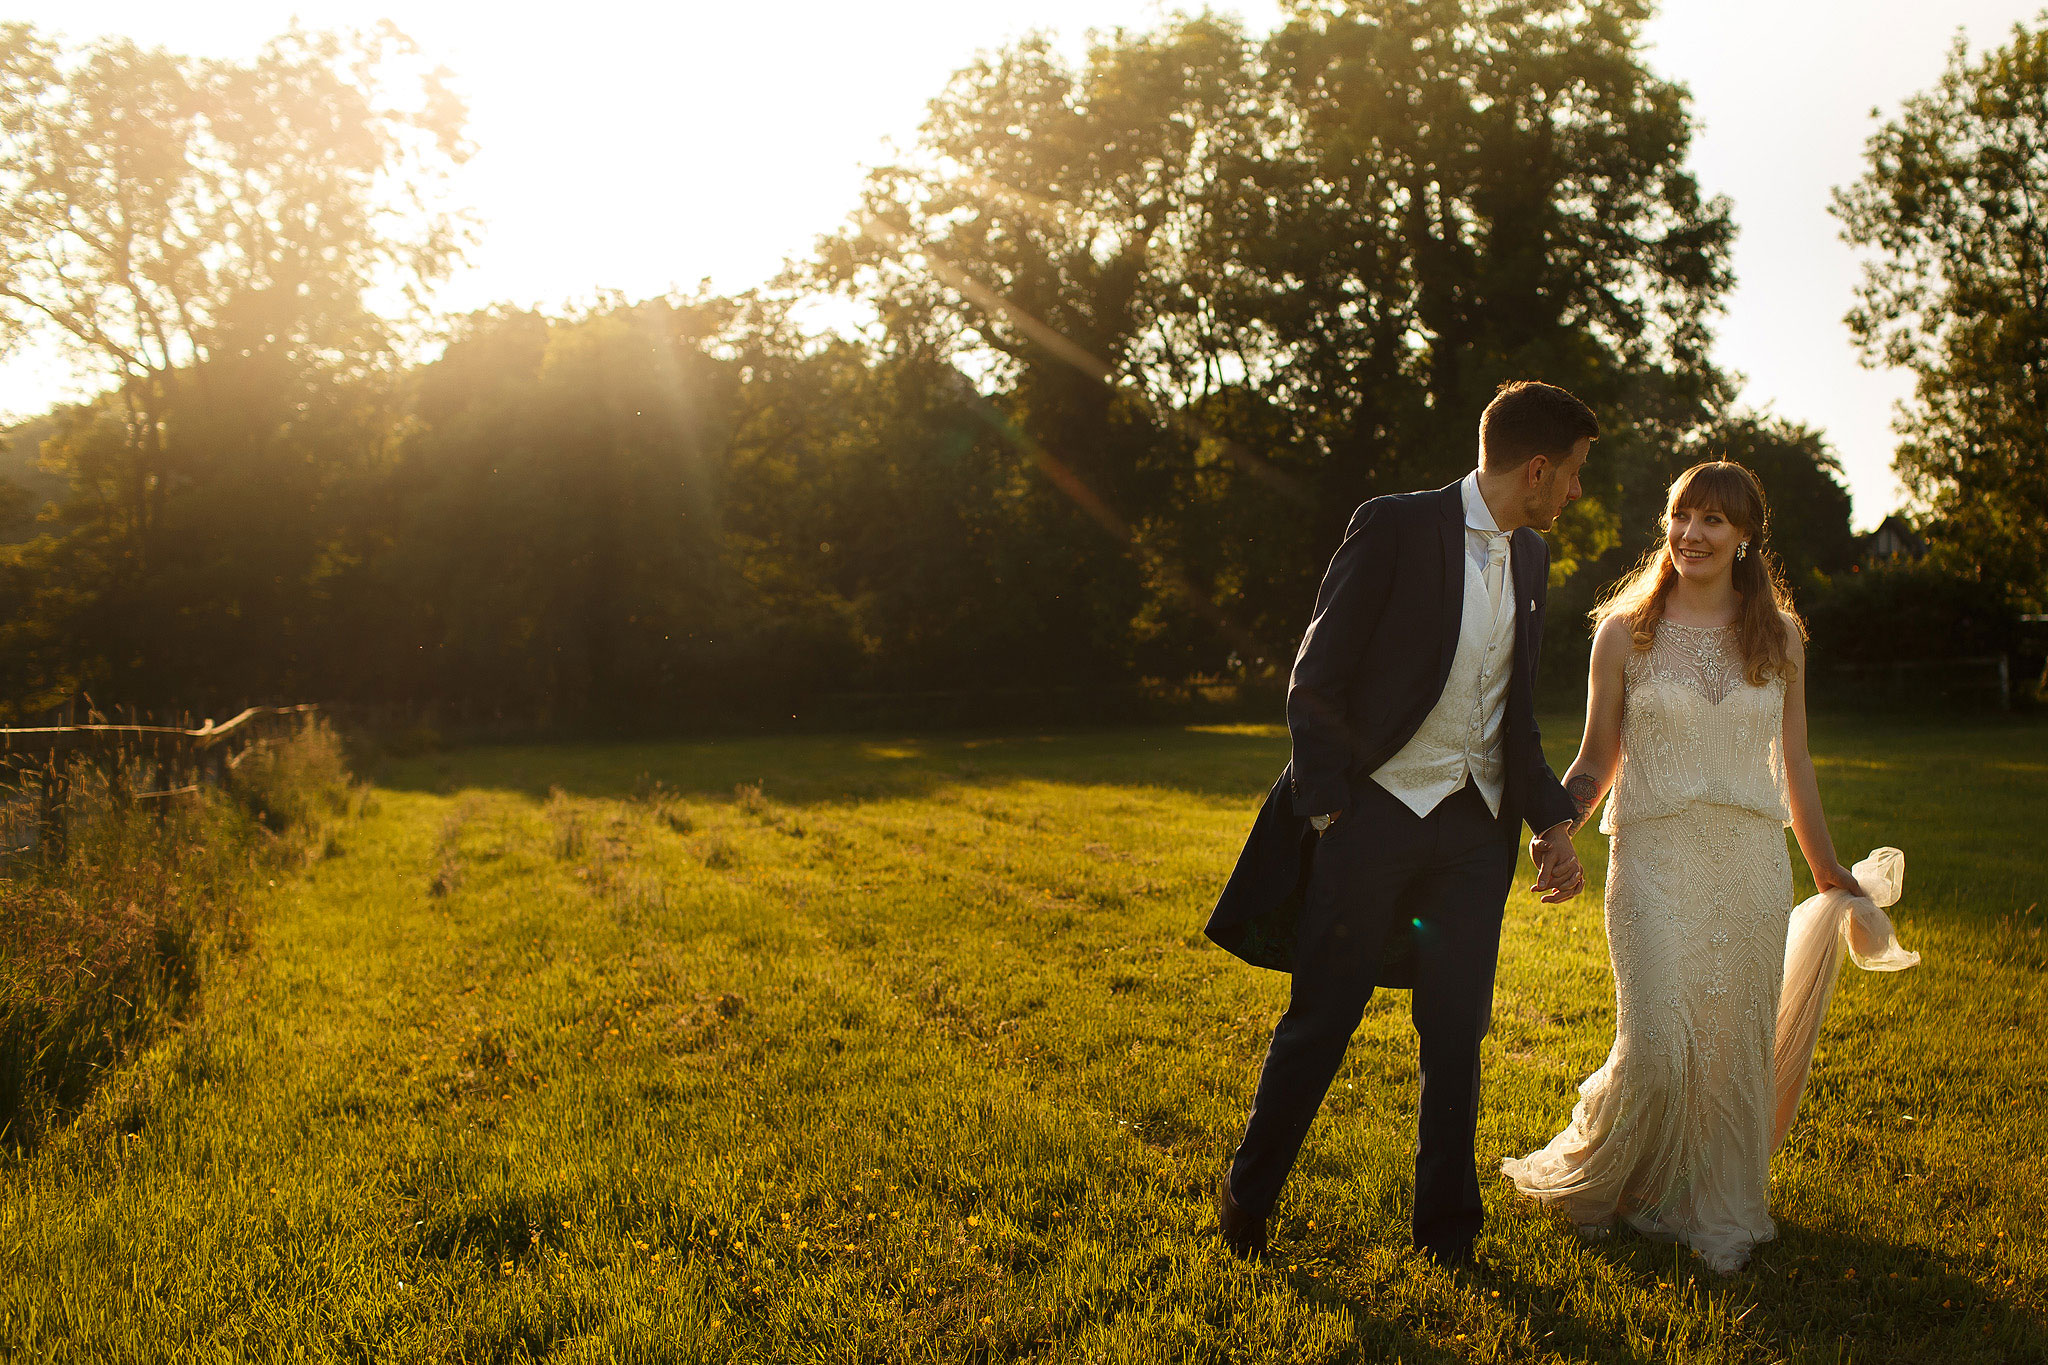 Bride and groom wedding day portraits walking through the fields in gorgeous sunlight in the gardens - The Villa at Wrea Green Wedding Photography - Toni Darcy Photography